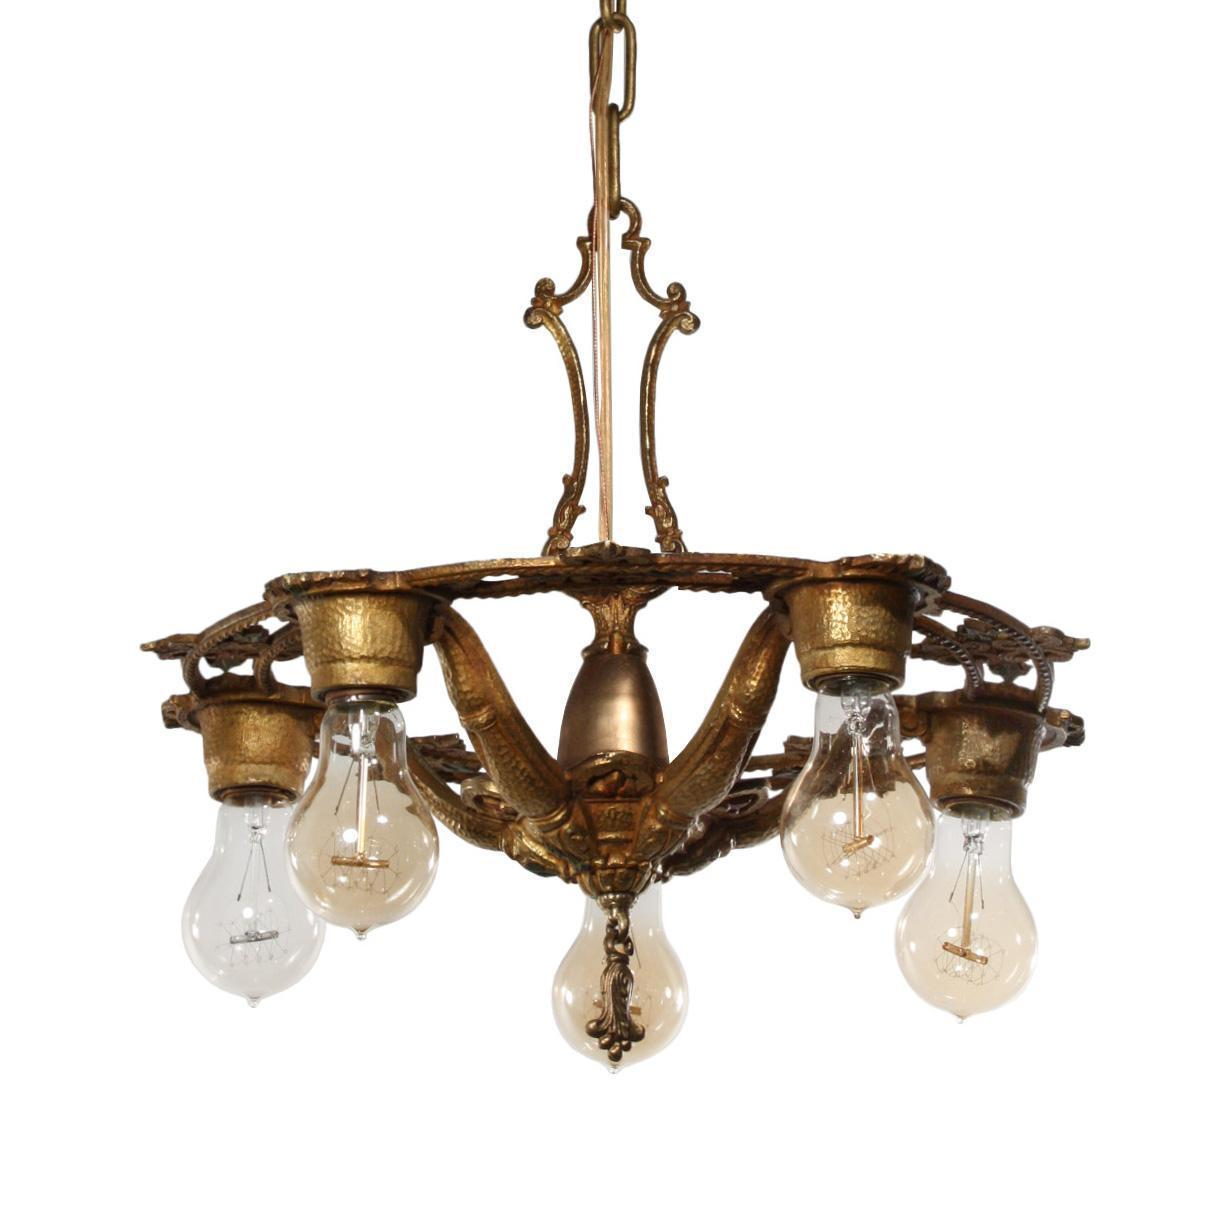 Beautiful Antique Chandelier with Original Polychrome Finish, Early 1900s